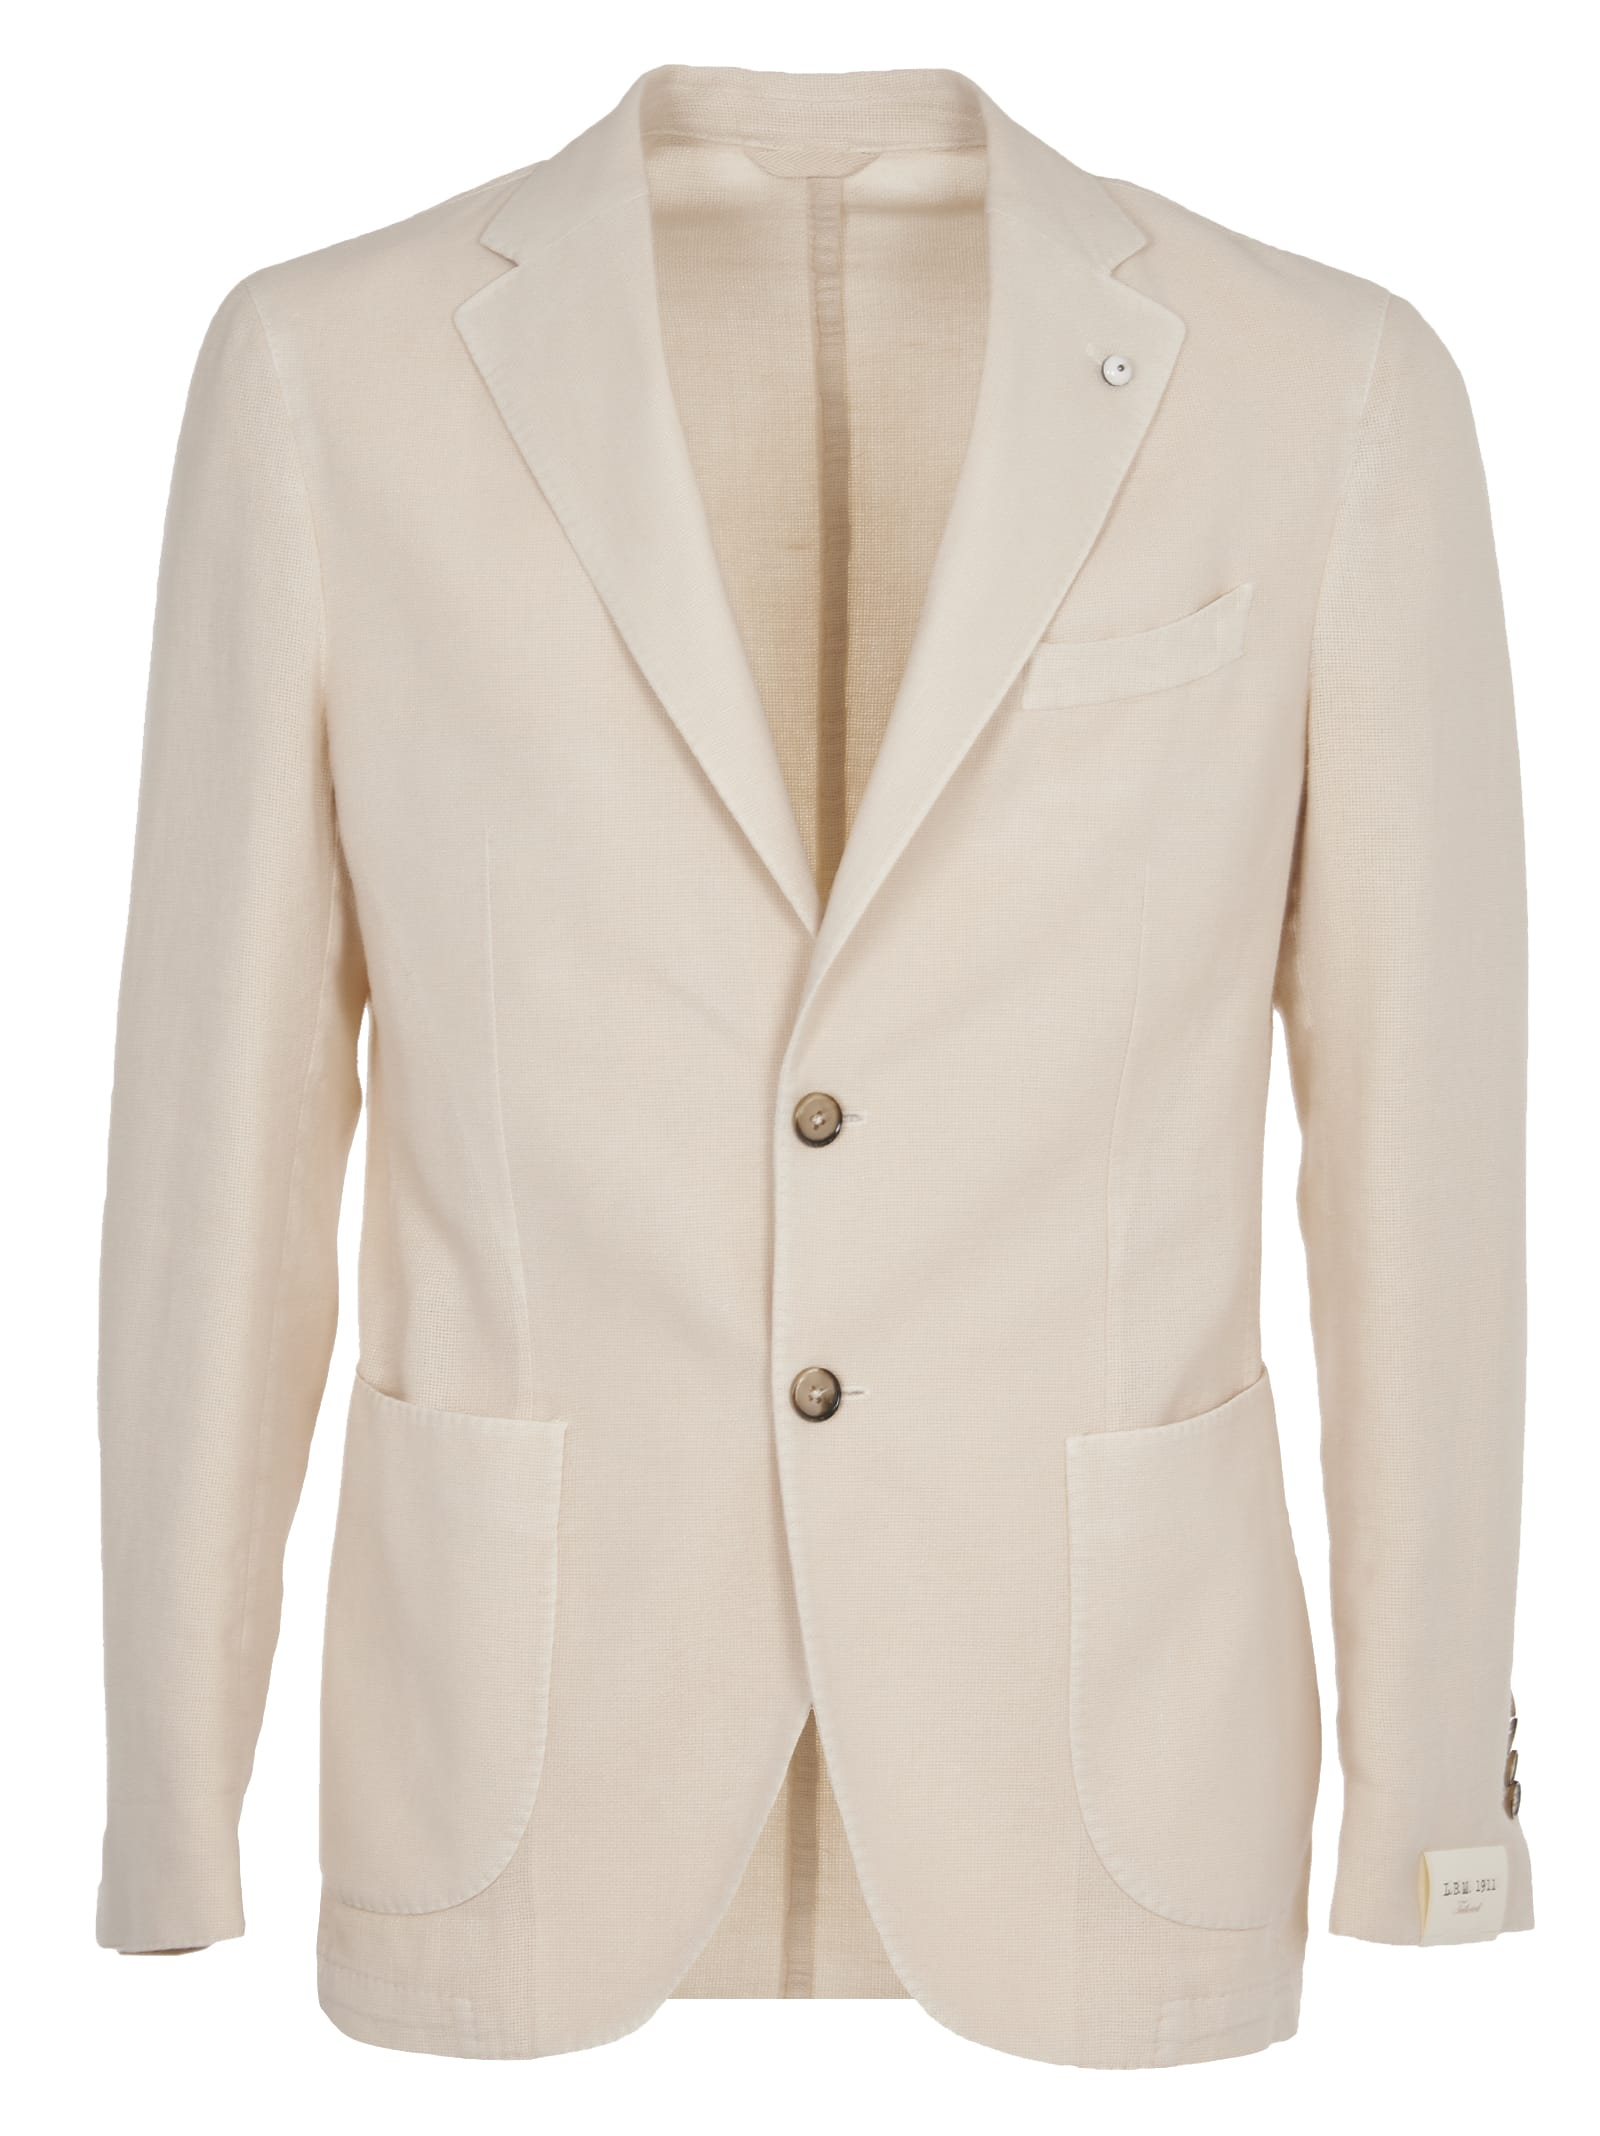 L.B.M. 1911 Cream Cotton And Linen Jacket